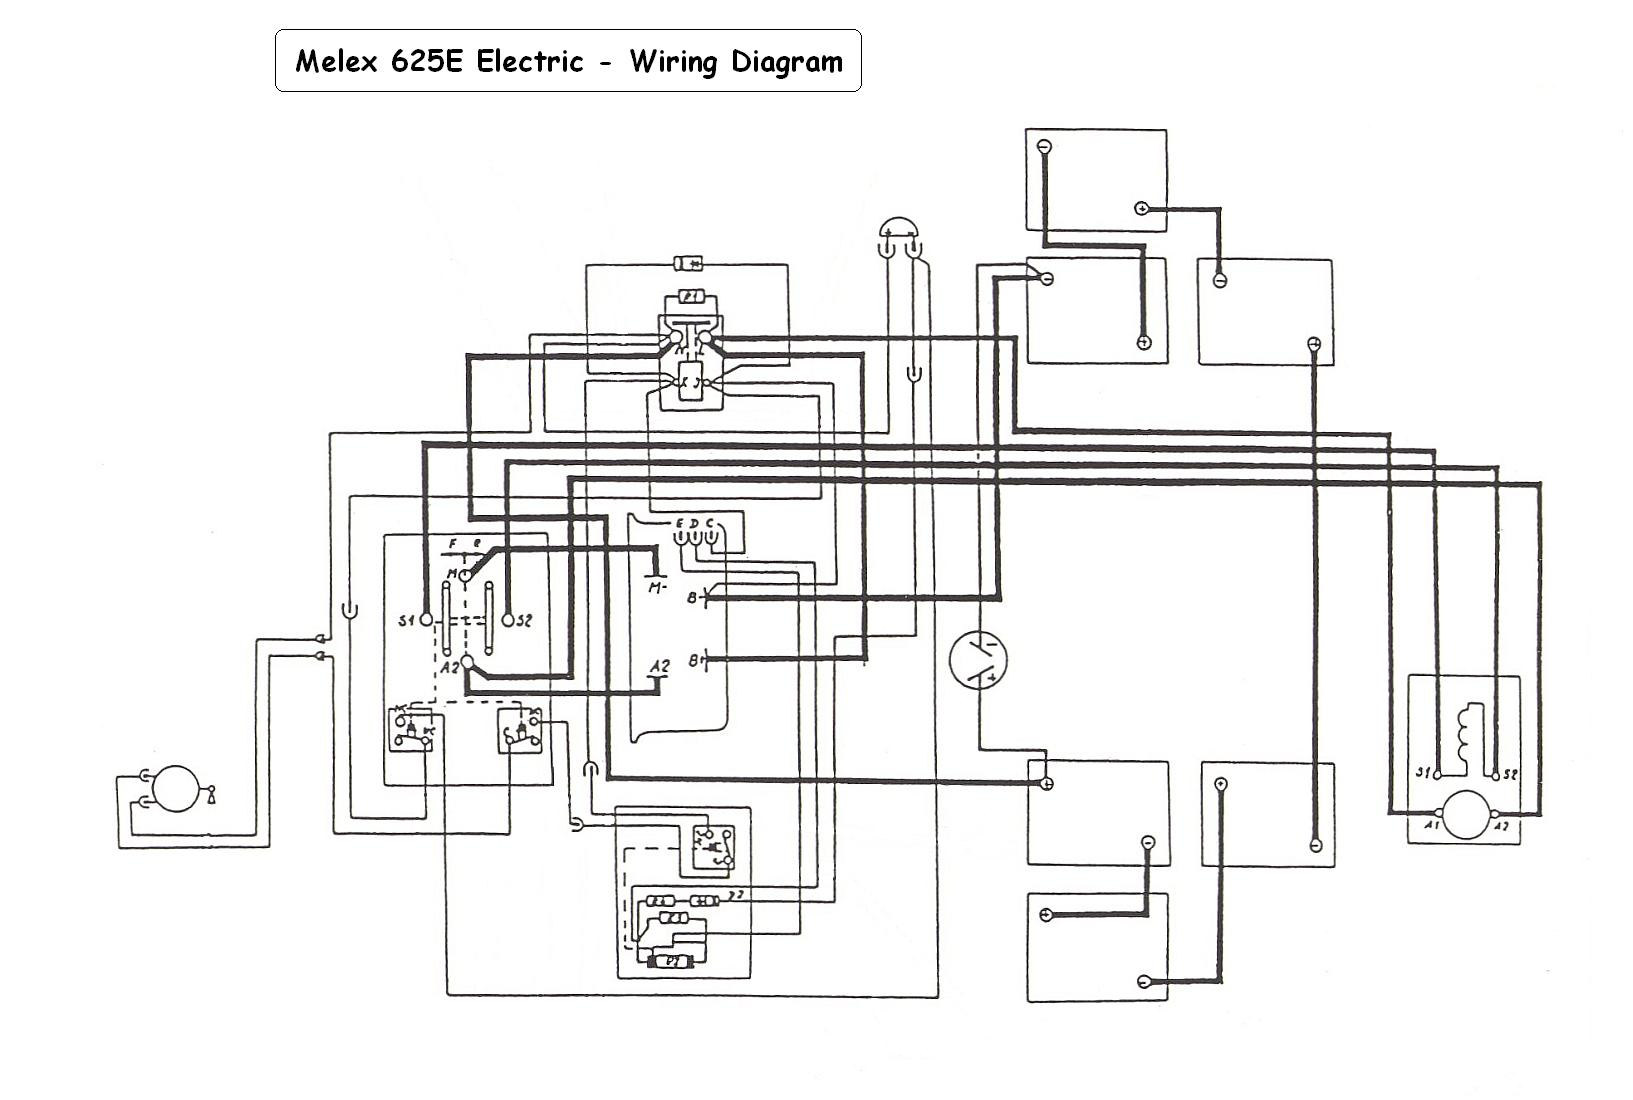 hyundai golf cart wiring diagram 1991 gmc jimmy radio cartaholics forum gt get free